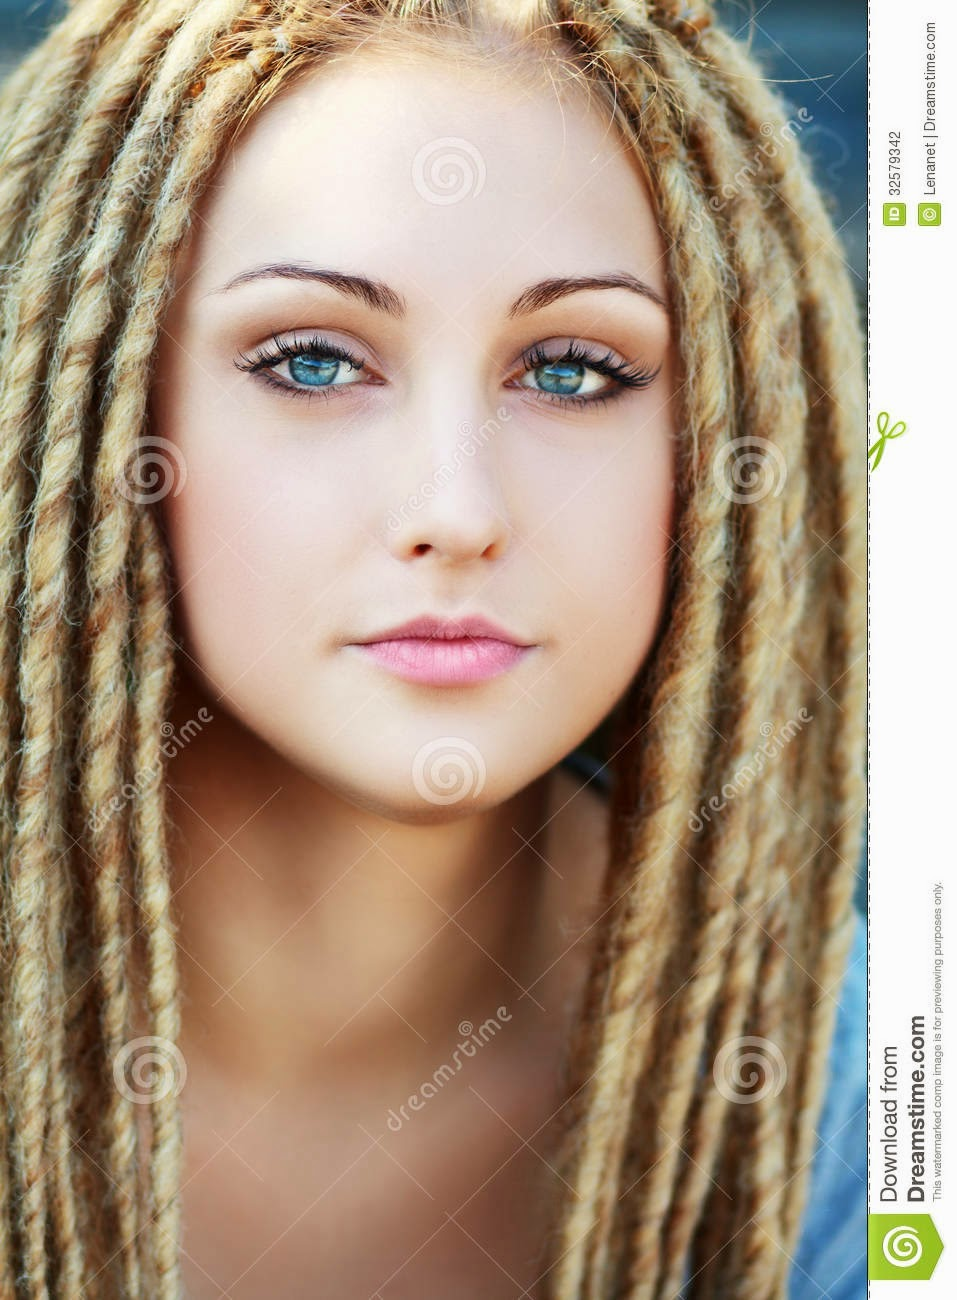 White Women With Dreads Nail Art And Tattoo Design Ideas